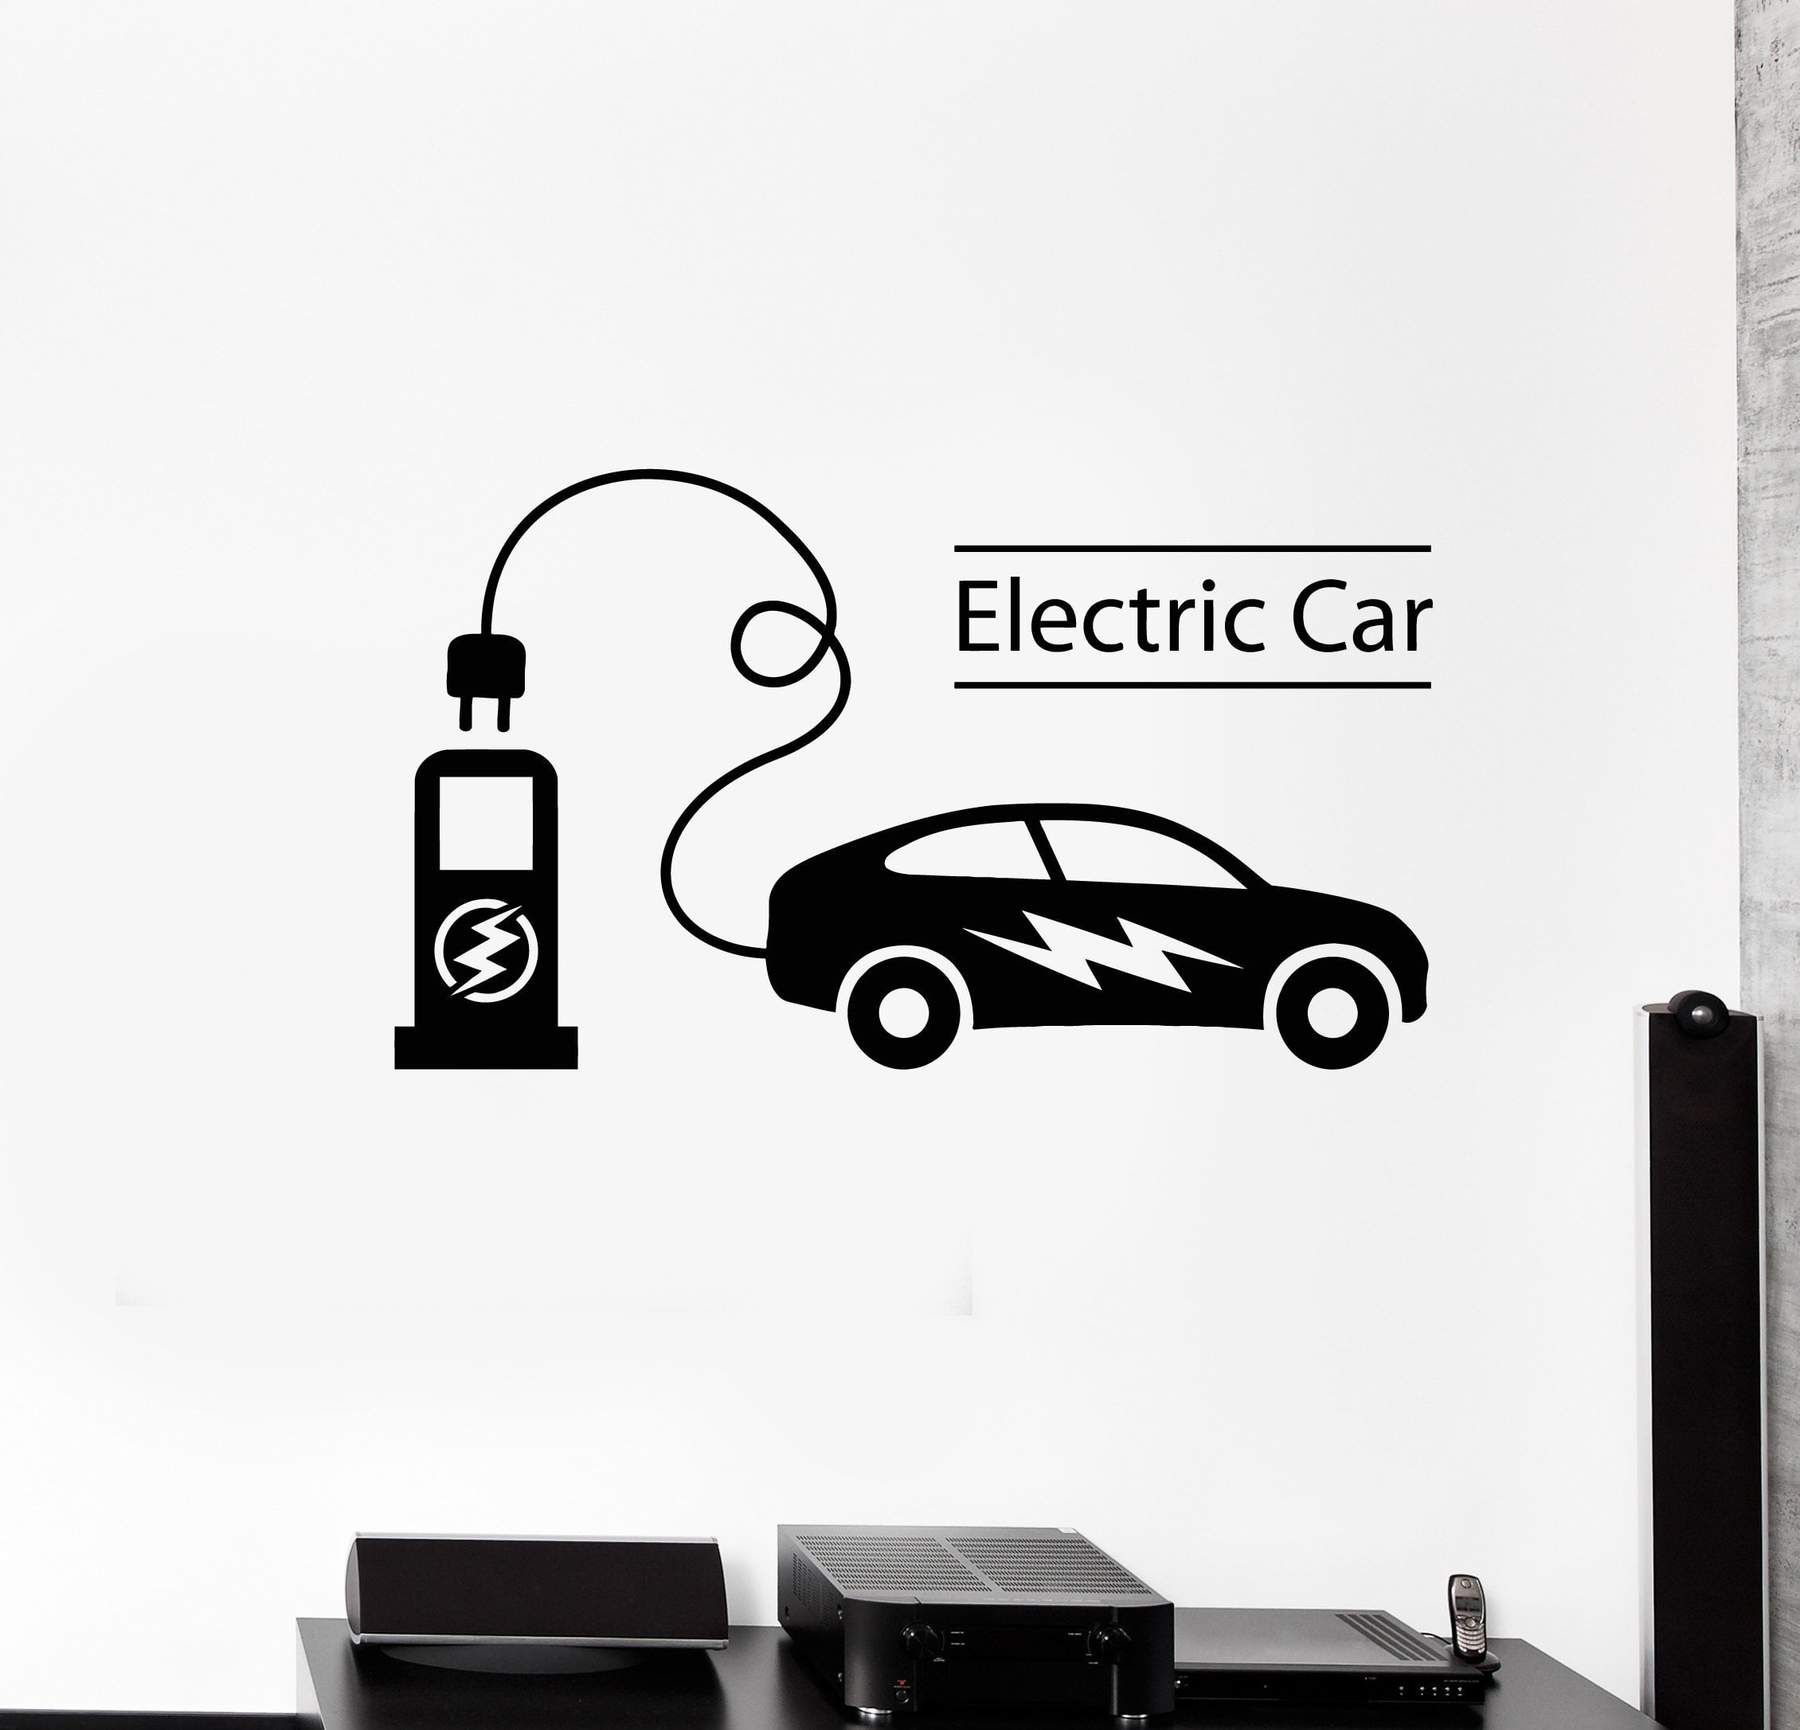 Vinyl Wall Decal Electric Car Electrical Charging Station Vehicle Stickers Mural Ig5368 Electric Car Vinyl Wall Decals Electricity [ 1730 x 1800 Pixel ]